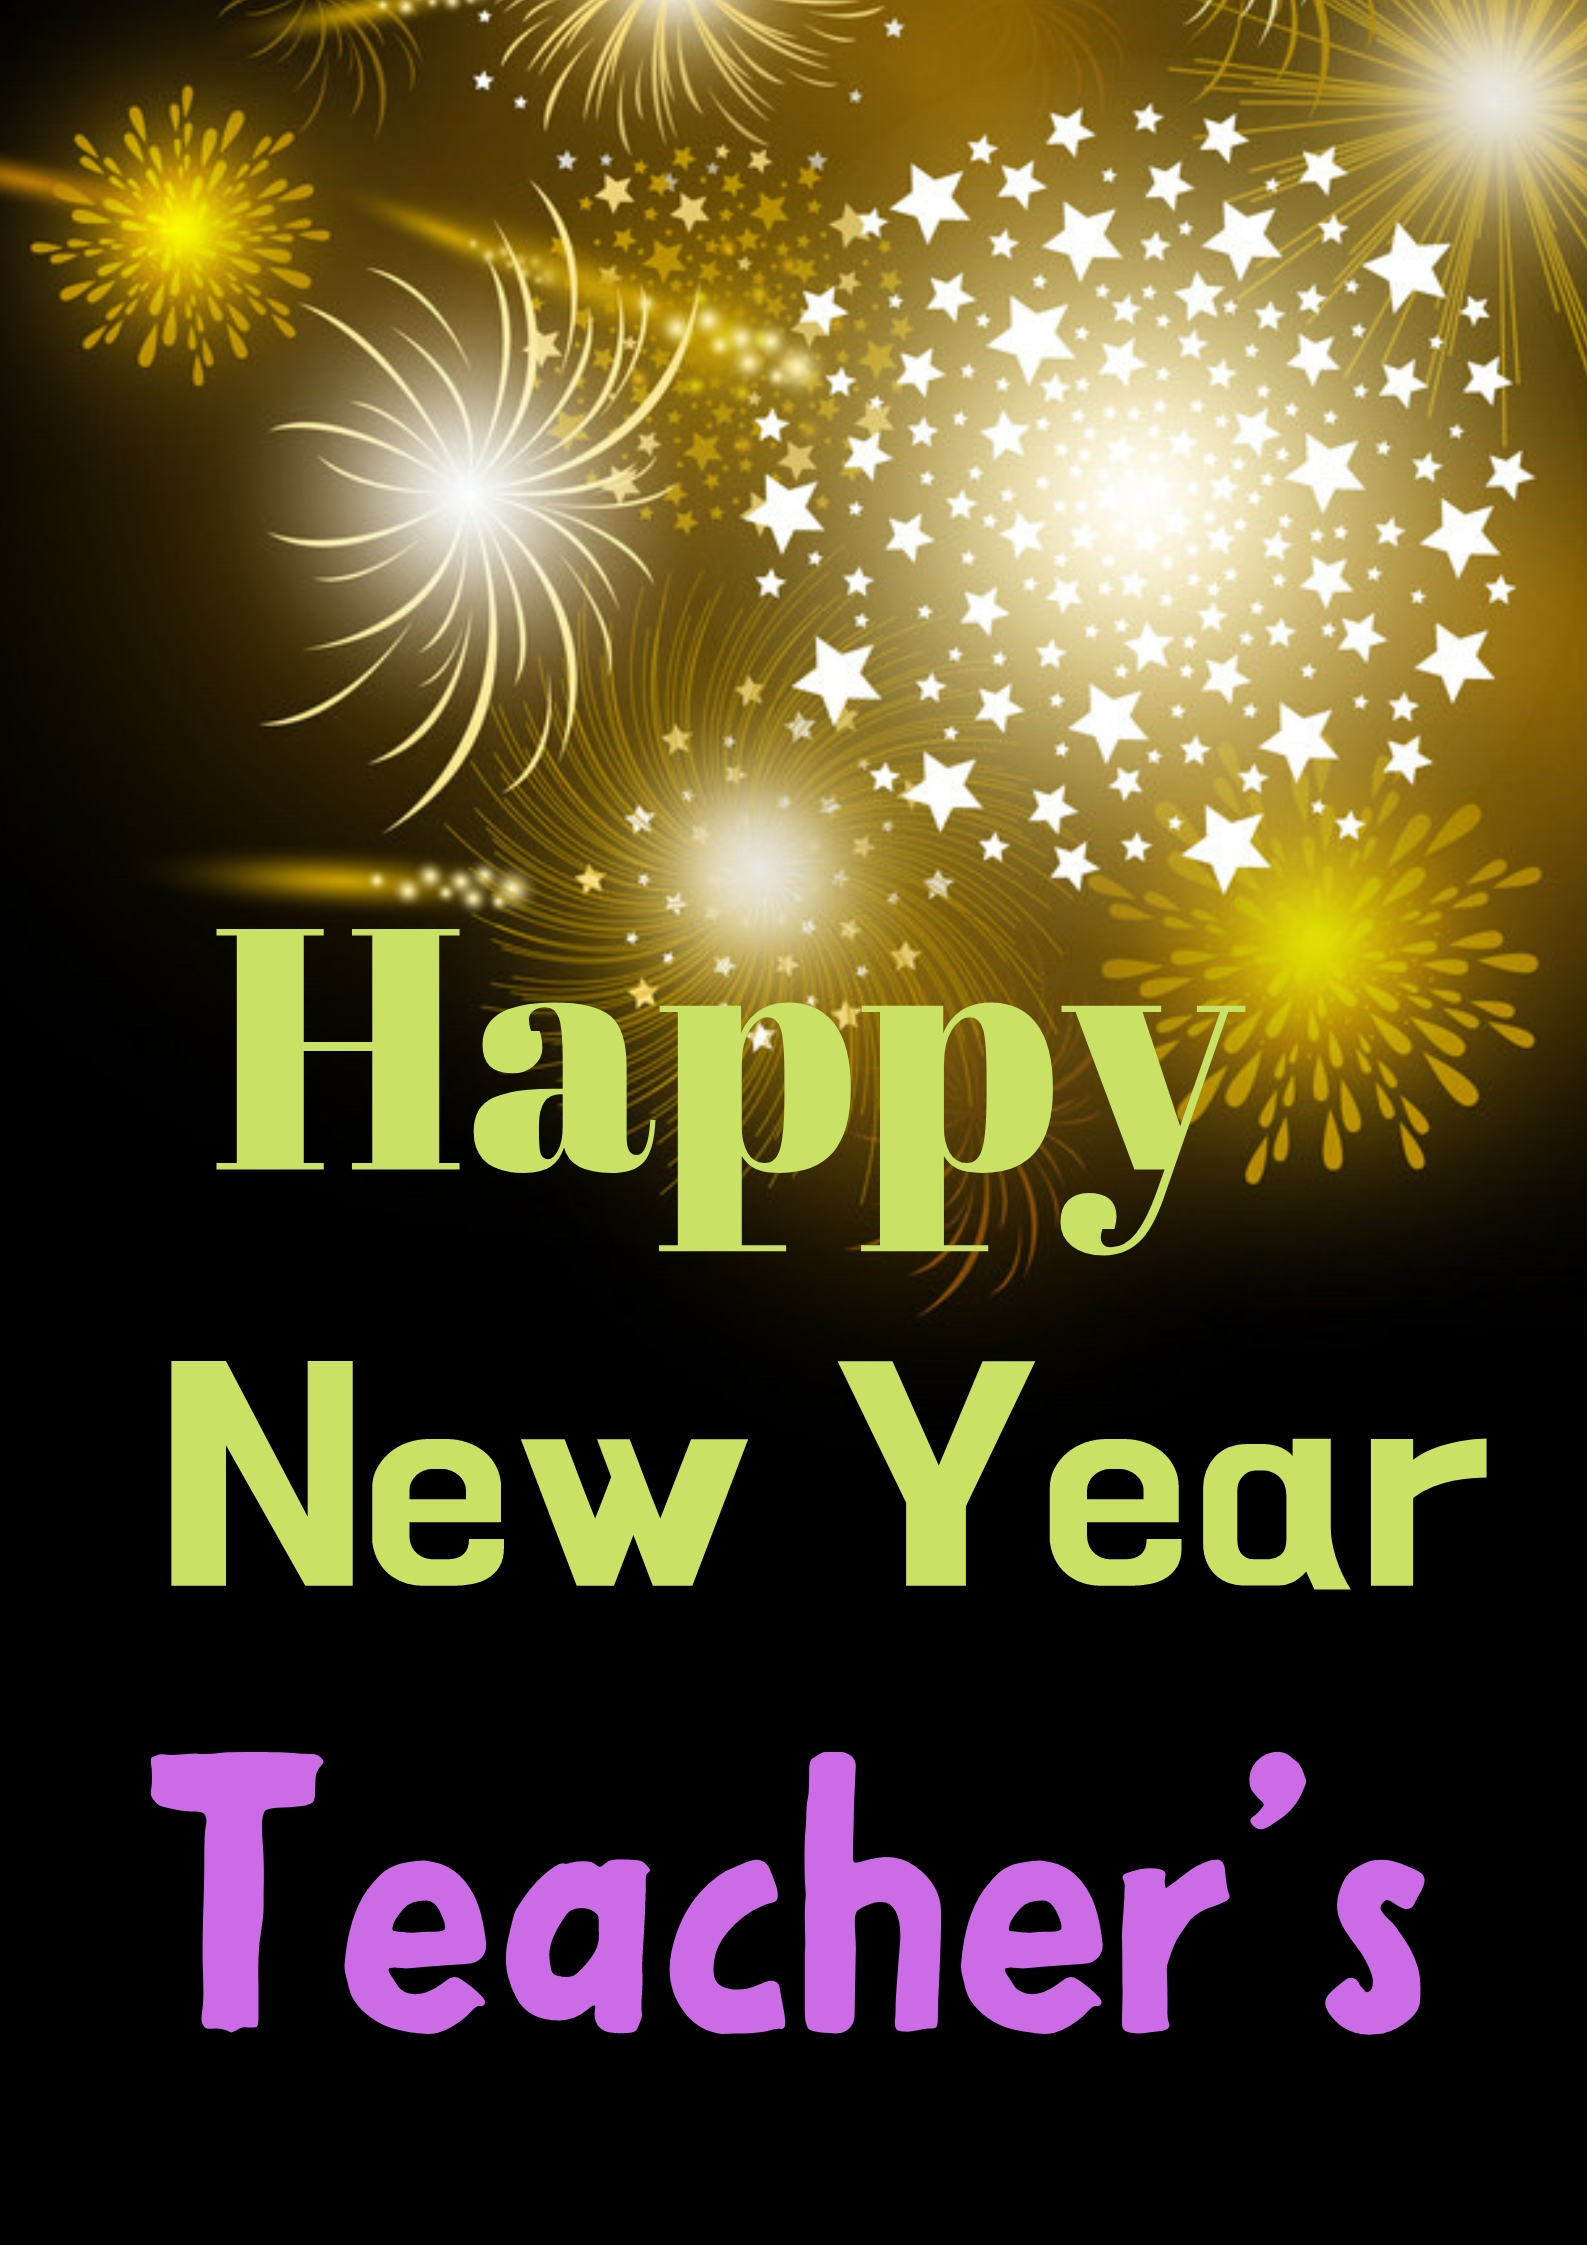 Happy New Year 2020 Wishes for Teacher